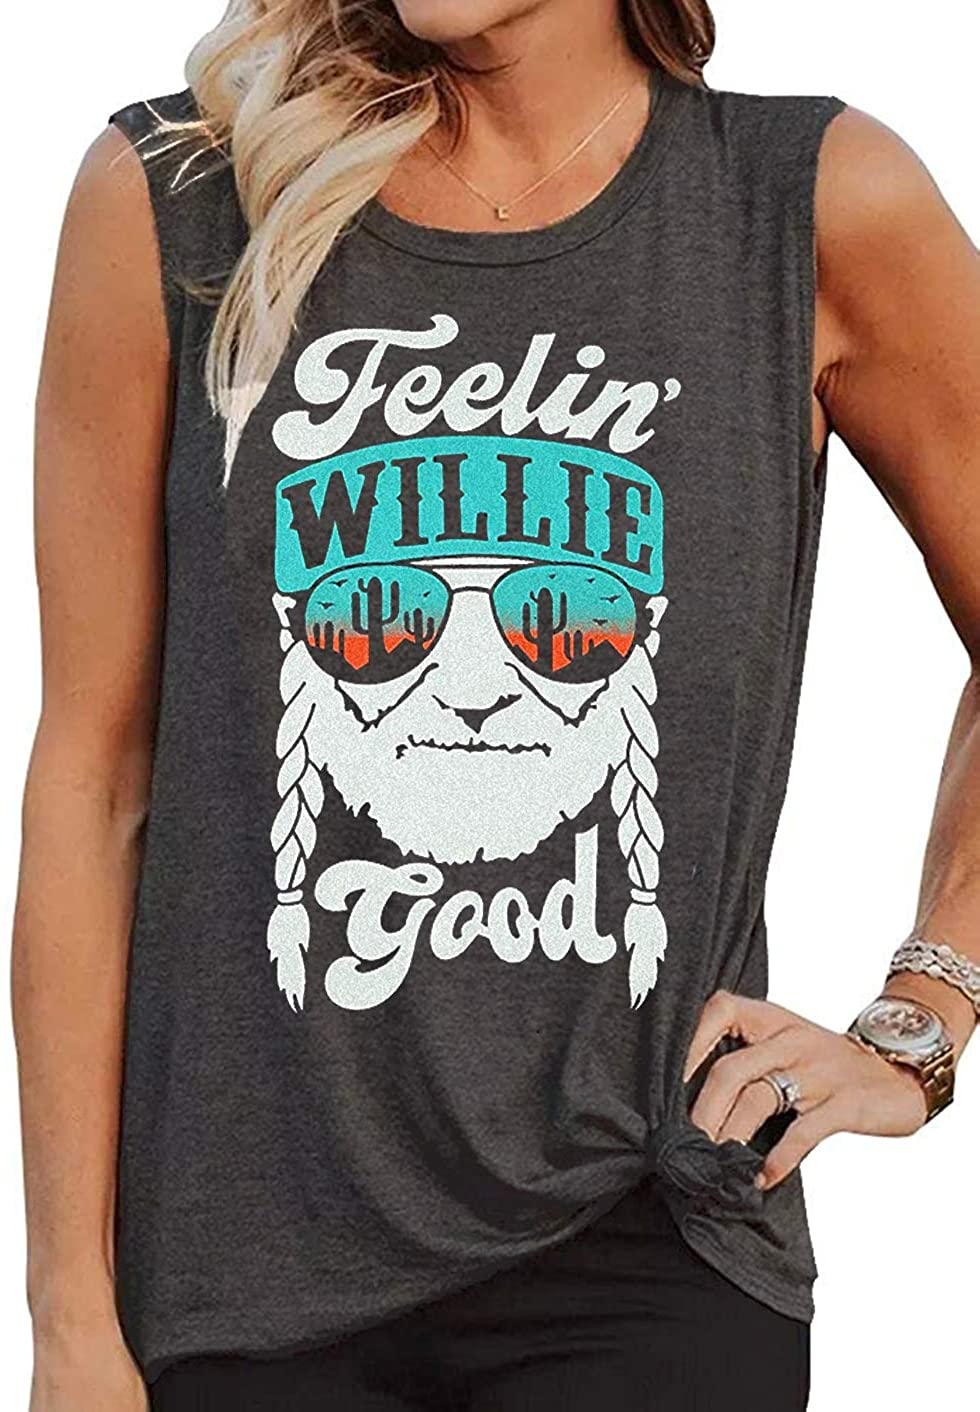 LANMERTREE Willie Nelson T Shirt Feelin Willie Good Women Graphic Tank Tops Country Music Summer Sleeveless Workout tees